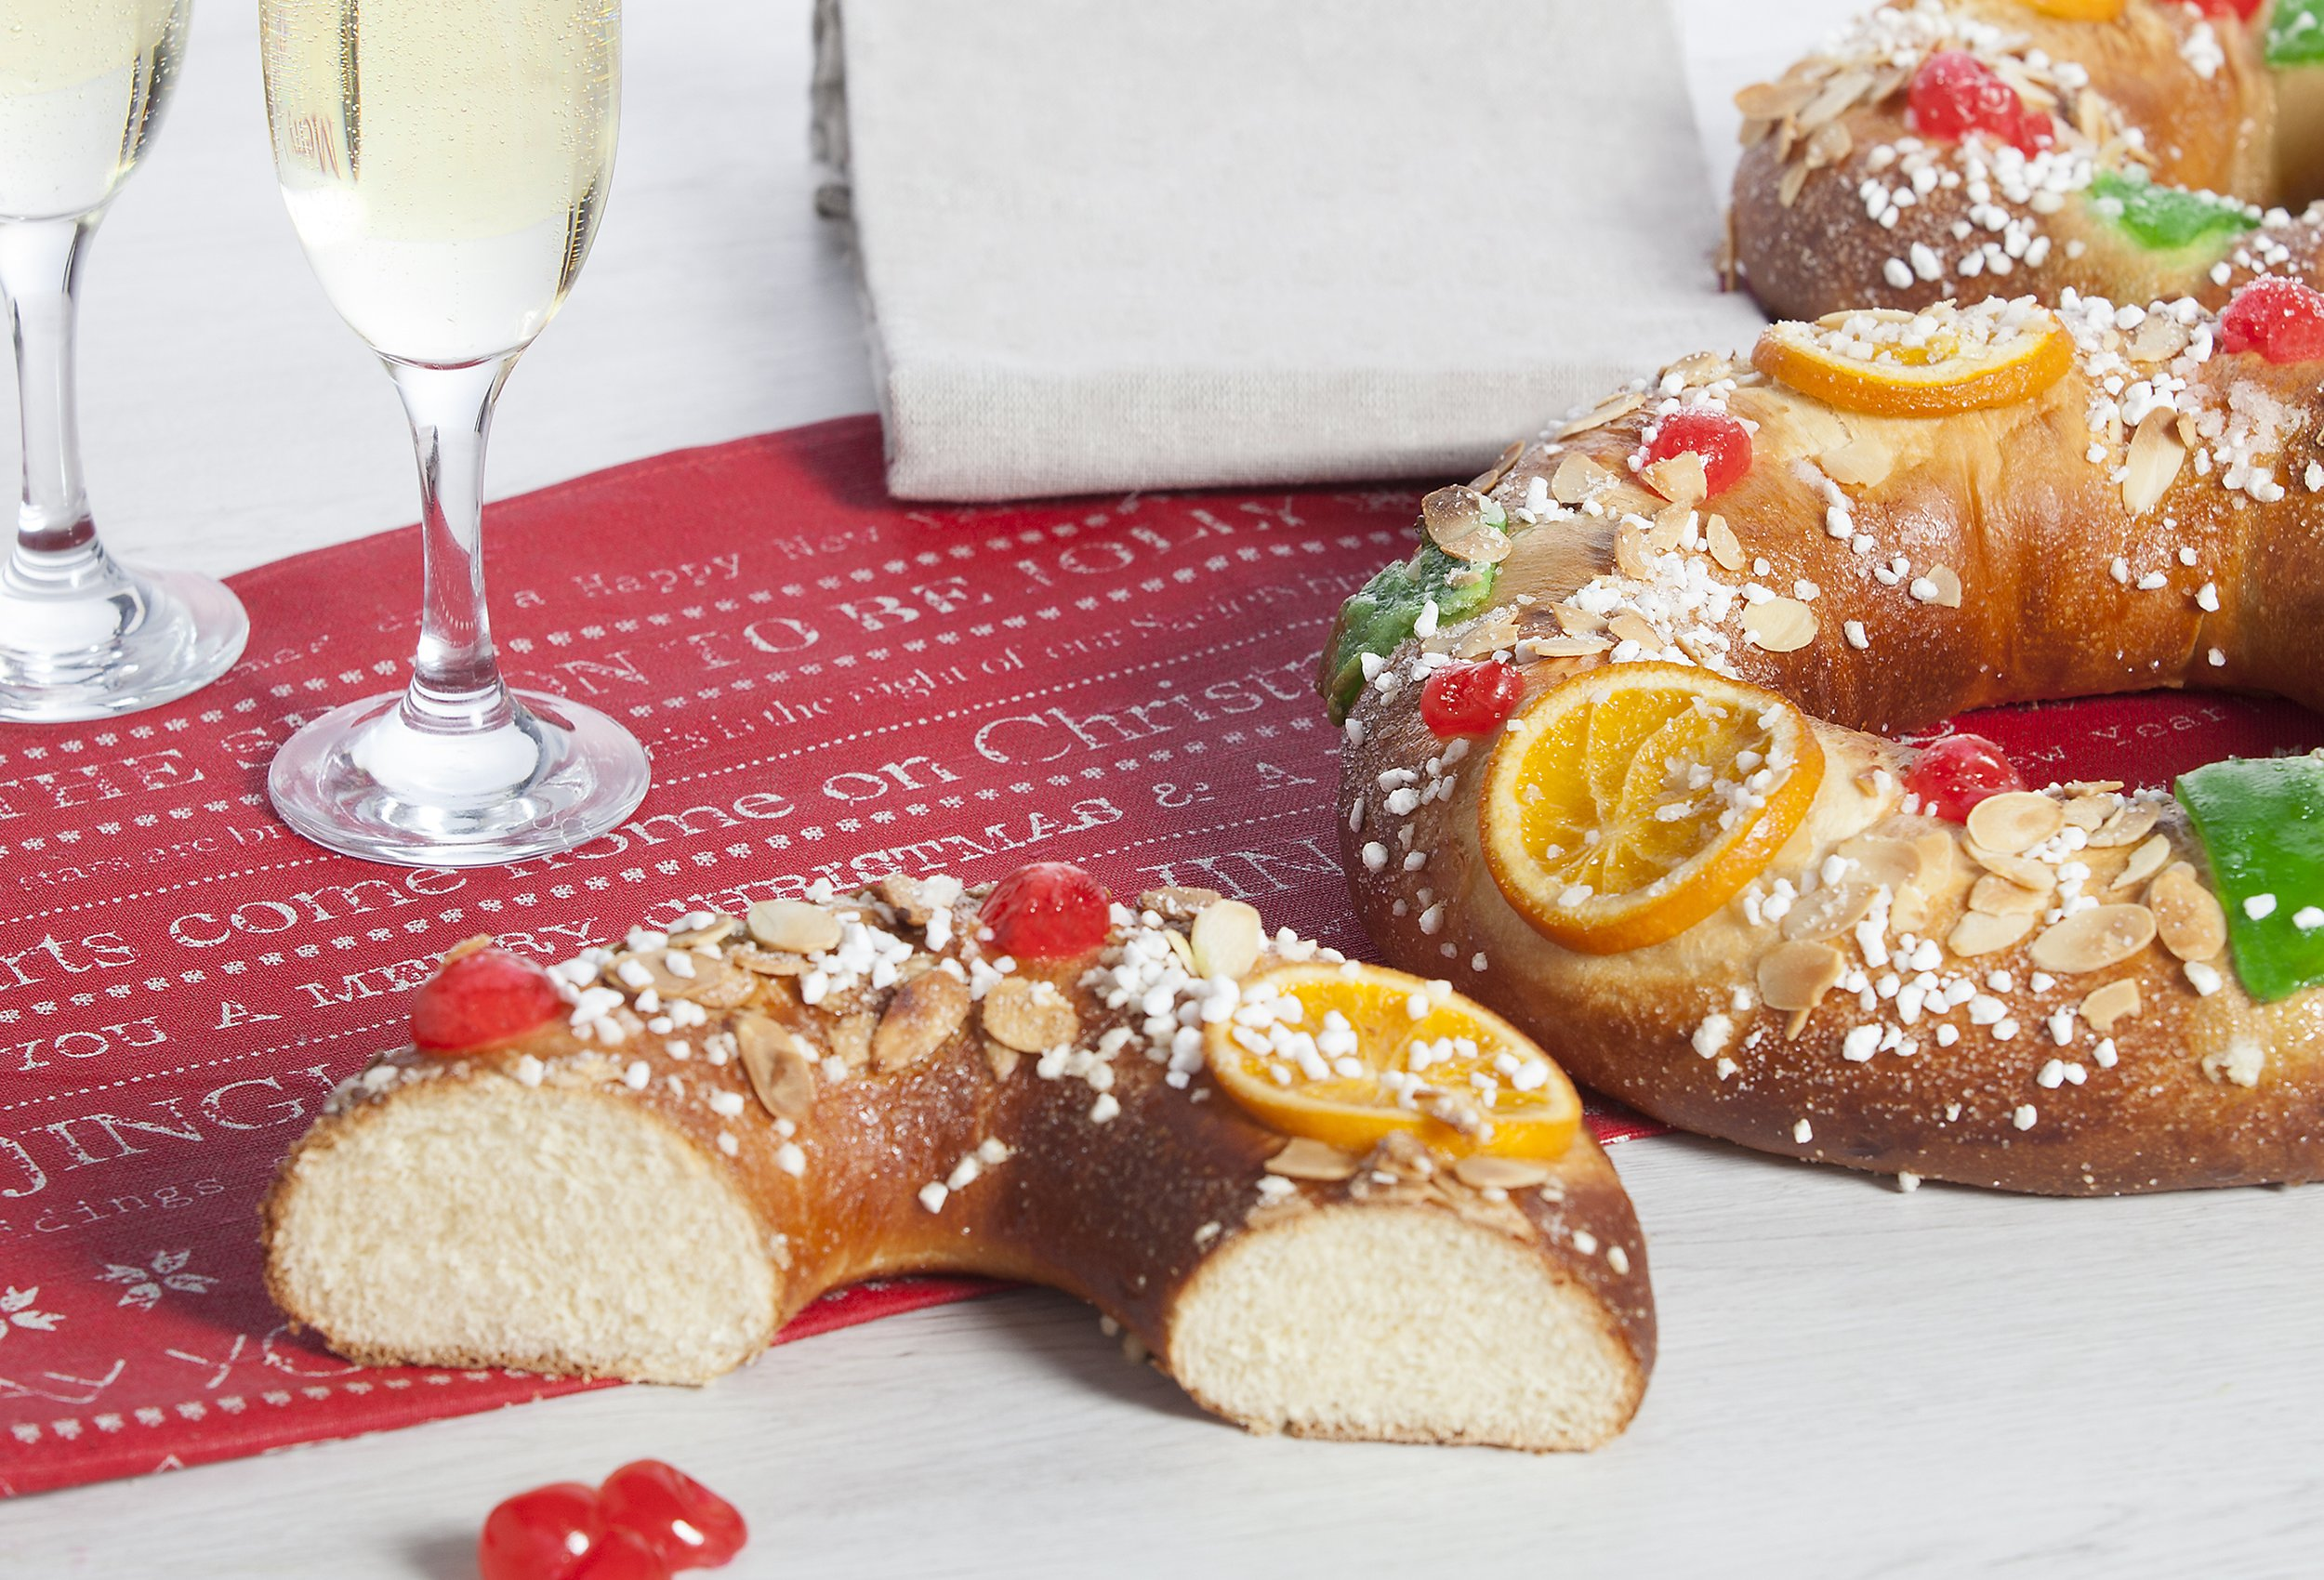 Three King & Festive Pastry Rings of Pastisart